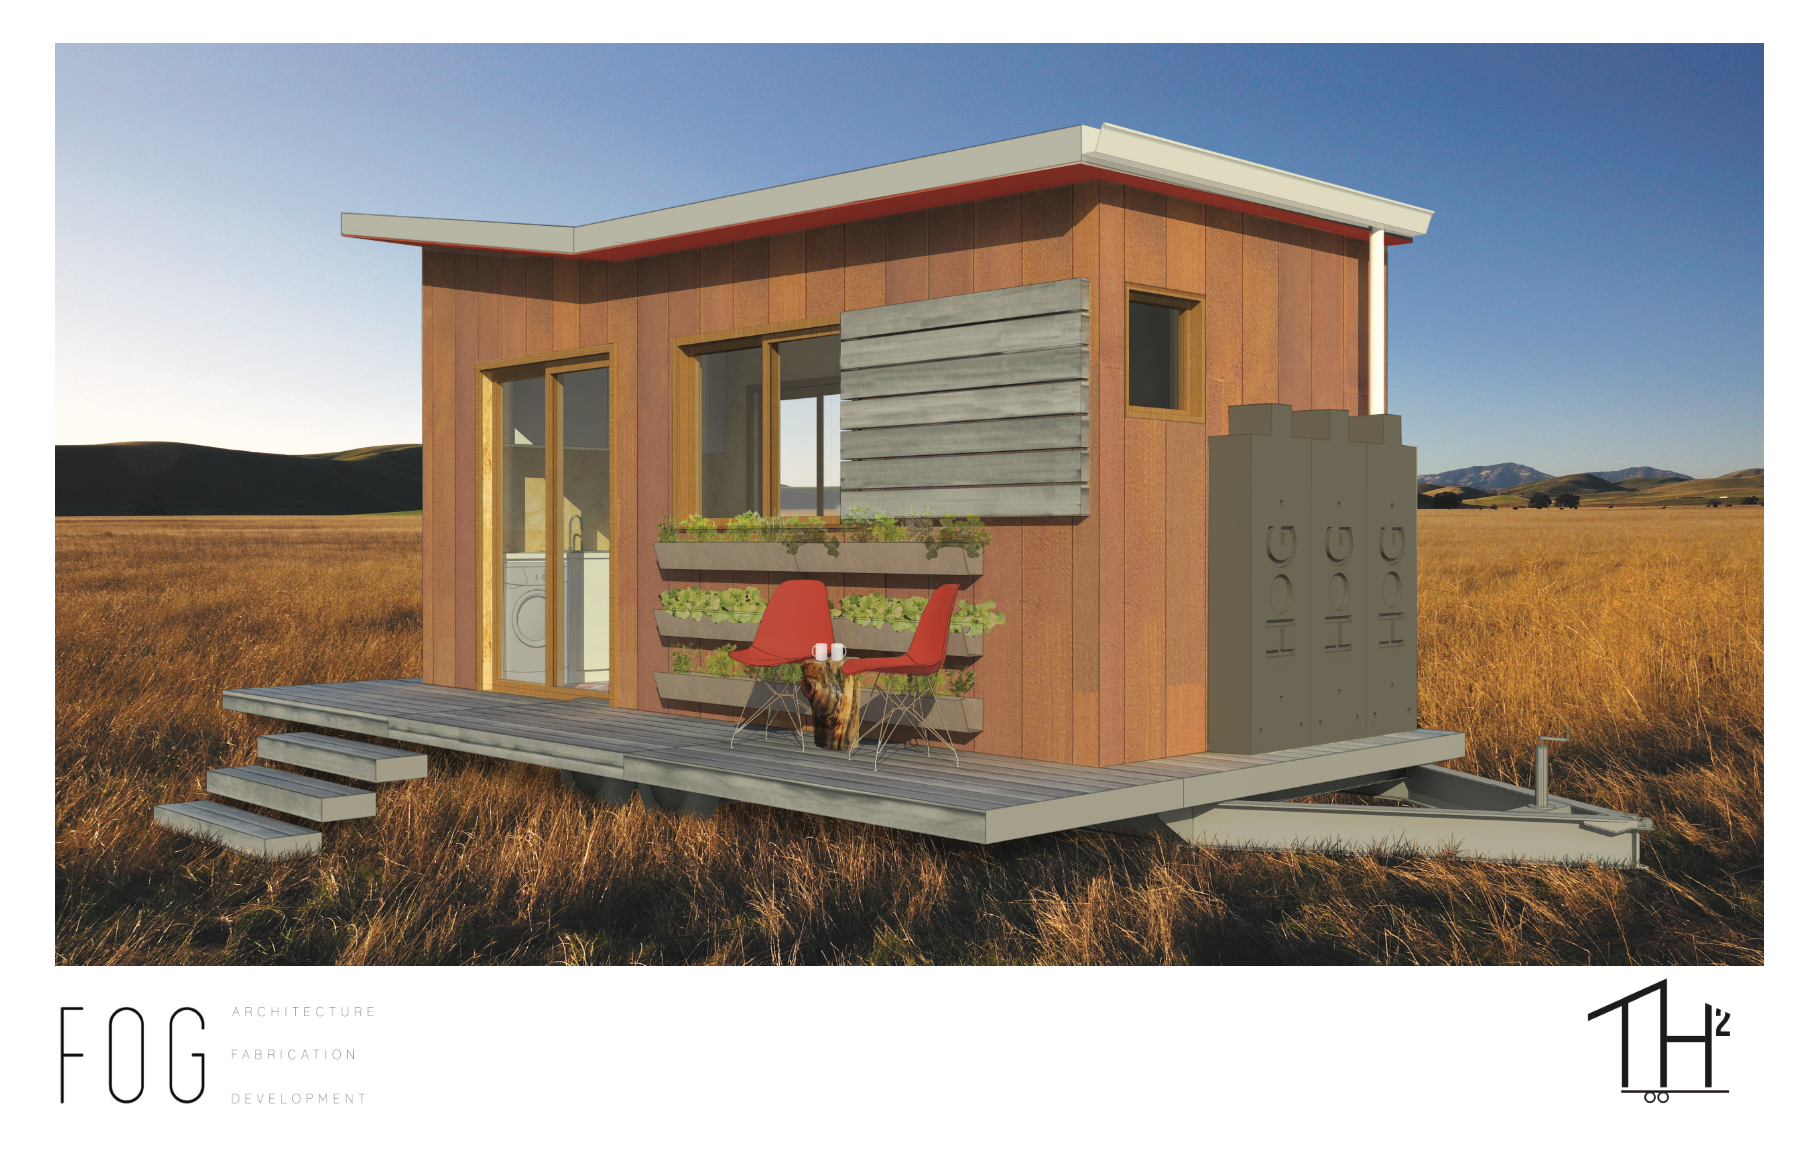 A collaboration with FOG architectural firm principals Brandon Marshall and Tiffany Redding, TH2 (Tiny House 2.0) is an exploration of what can be achieved from both a design and sustainability standpoint in a sub-200 square foot space.